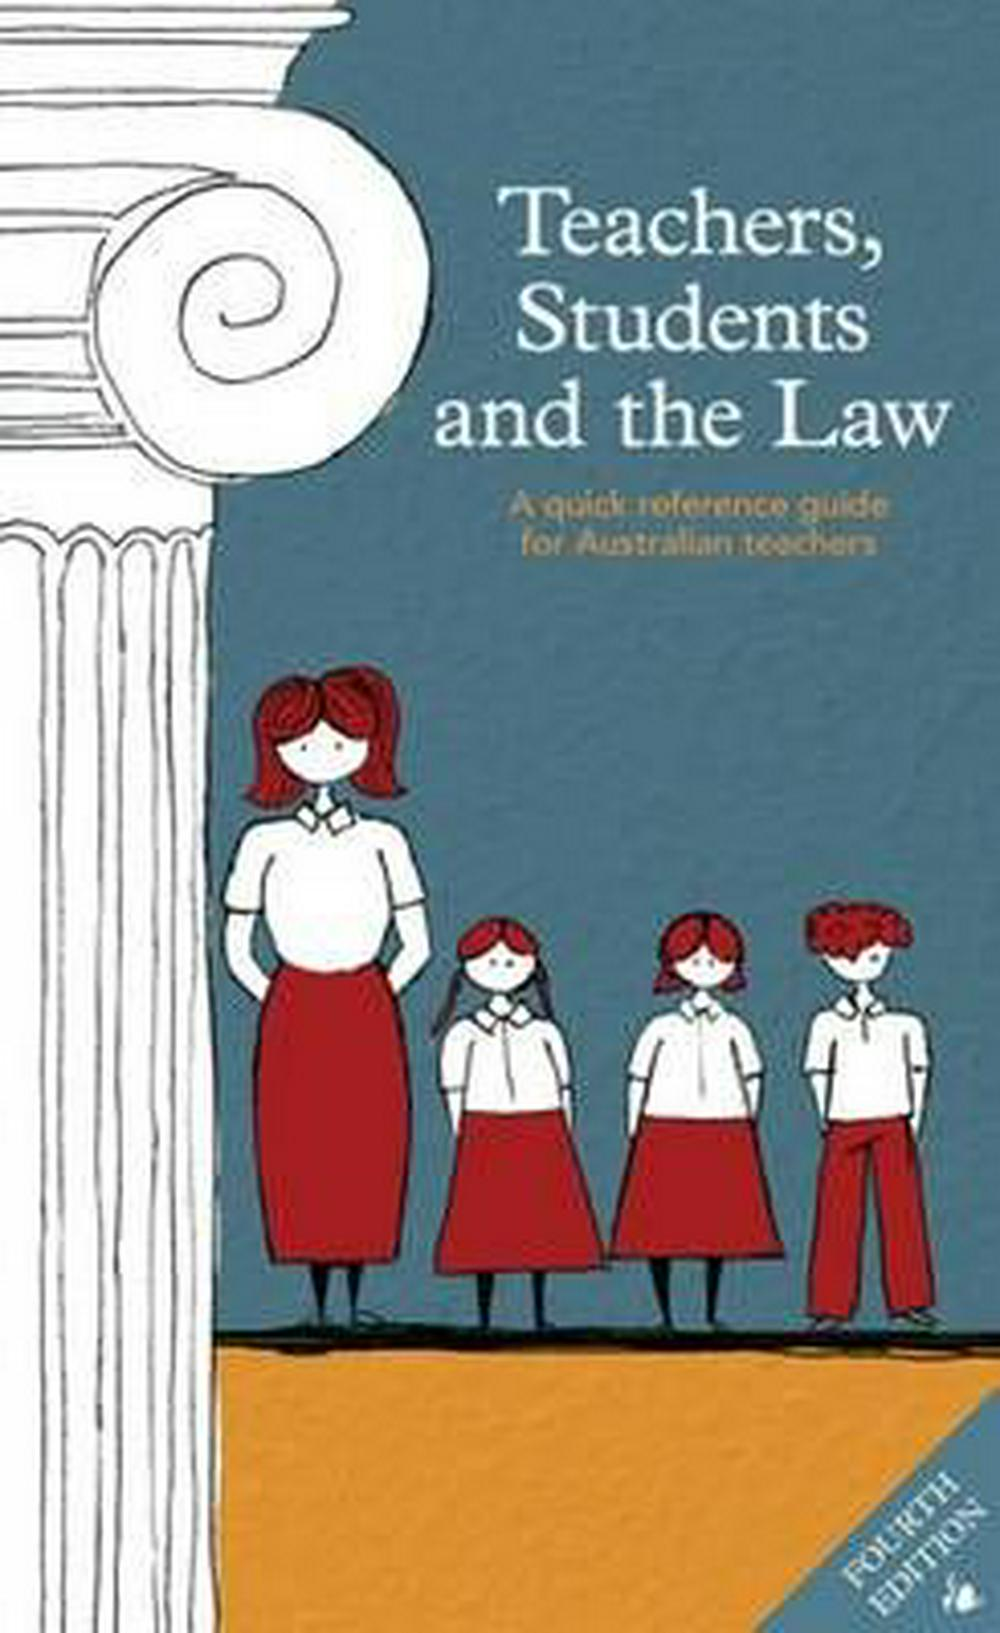 Teachers, Students and the Law, Fourth Edition